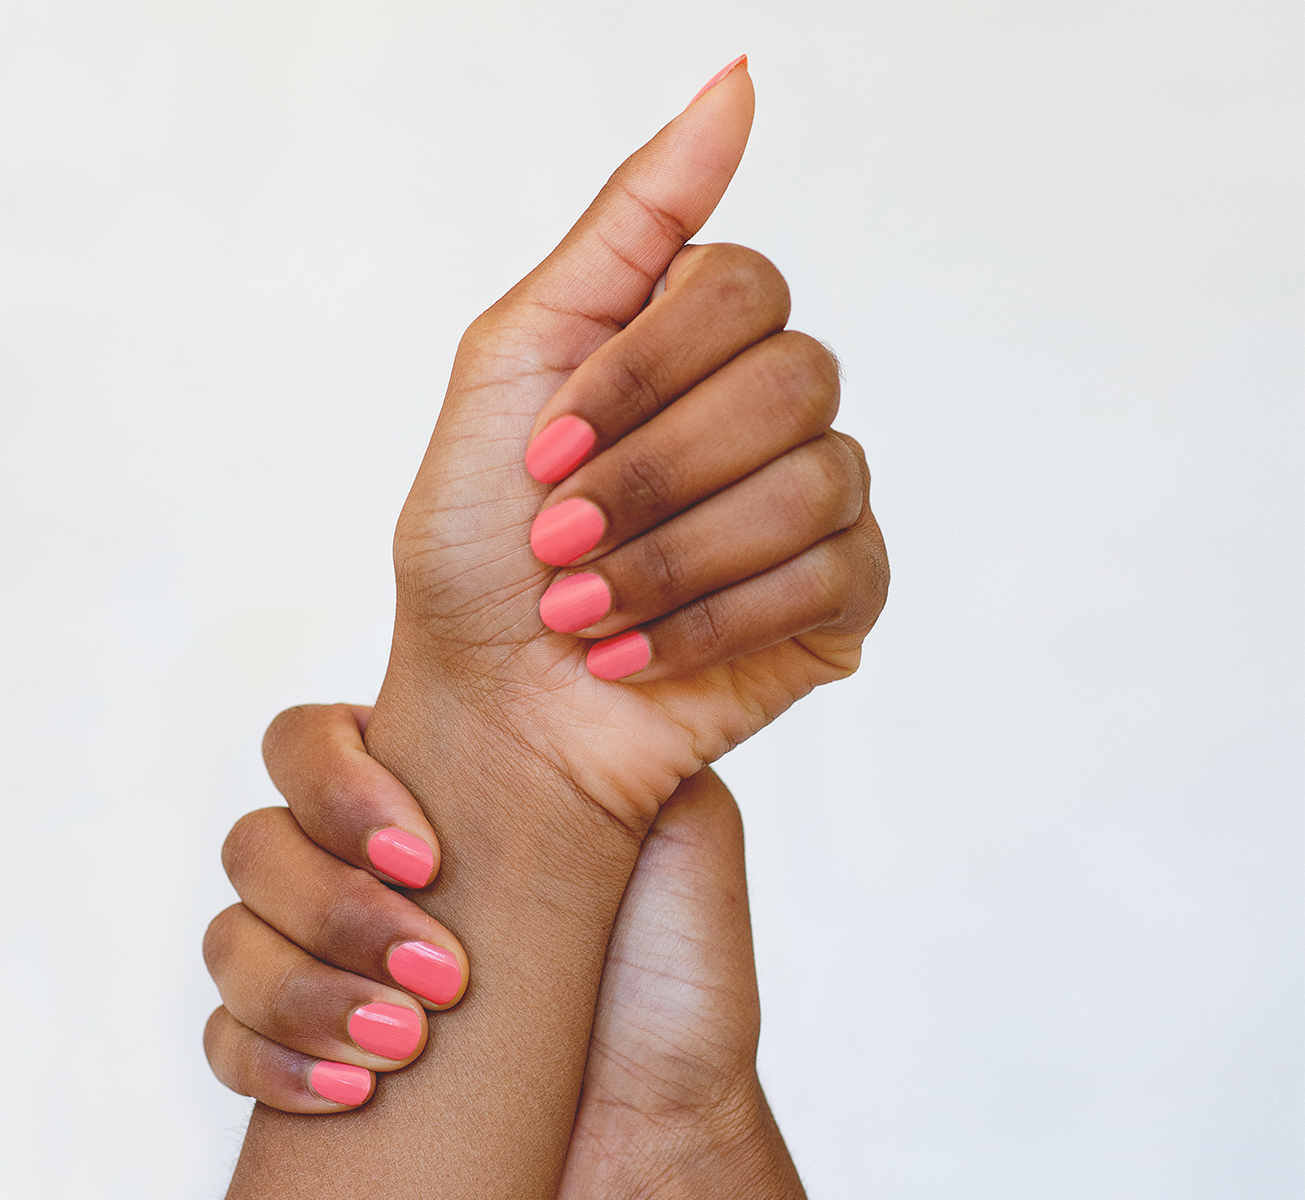 Peachy pink nail polish hand swatch on medium skin tone by sienna